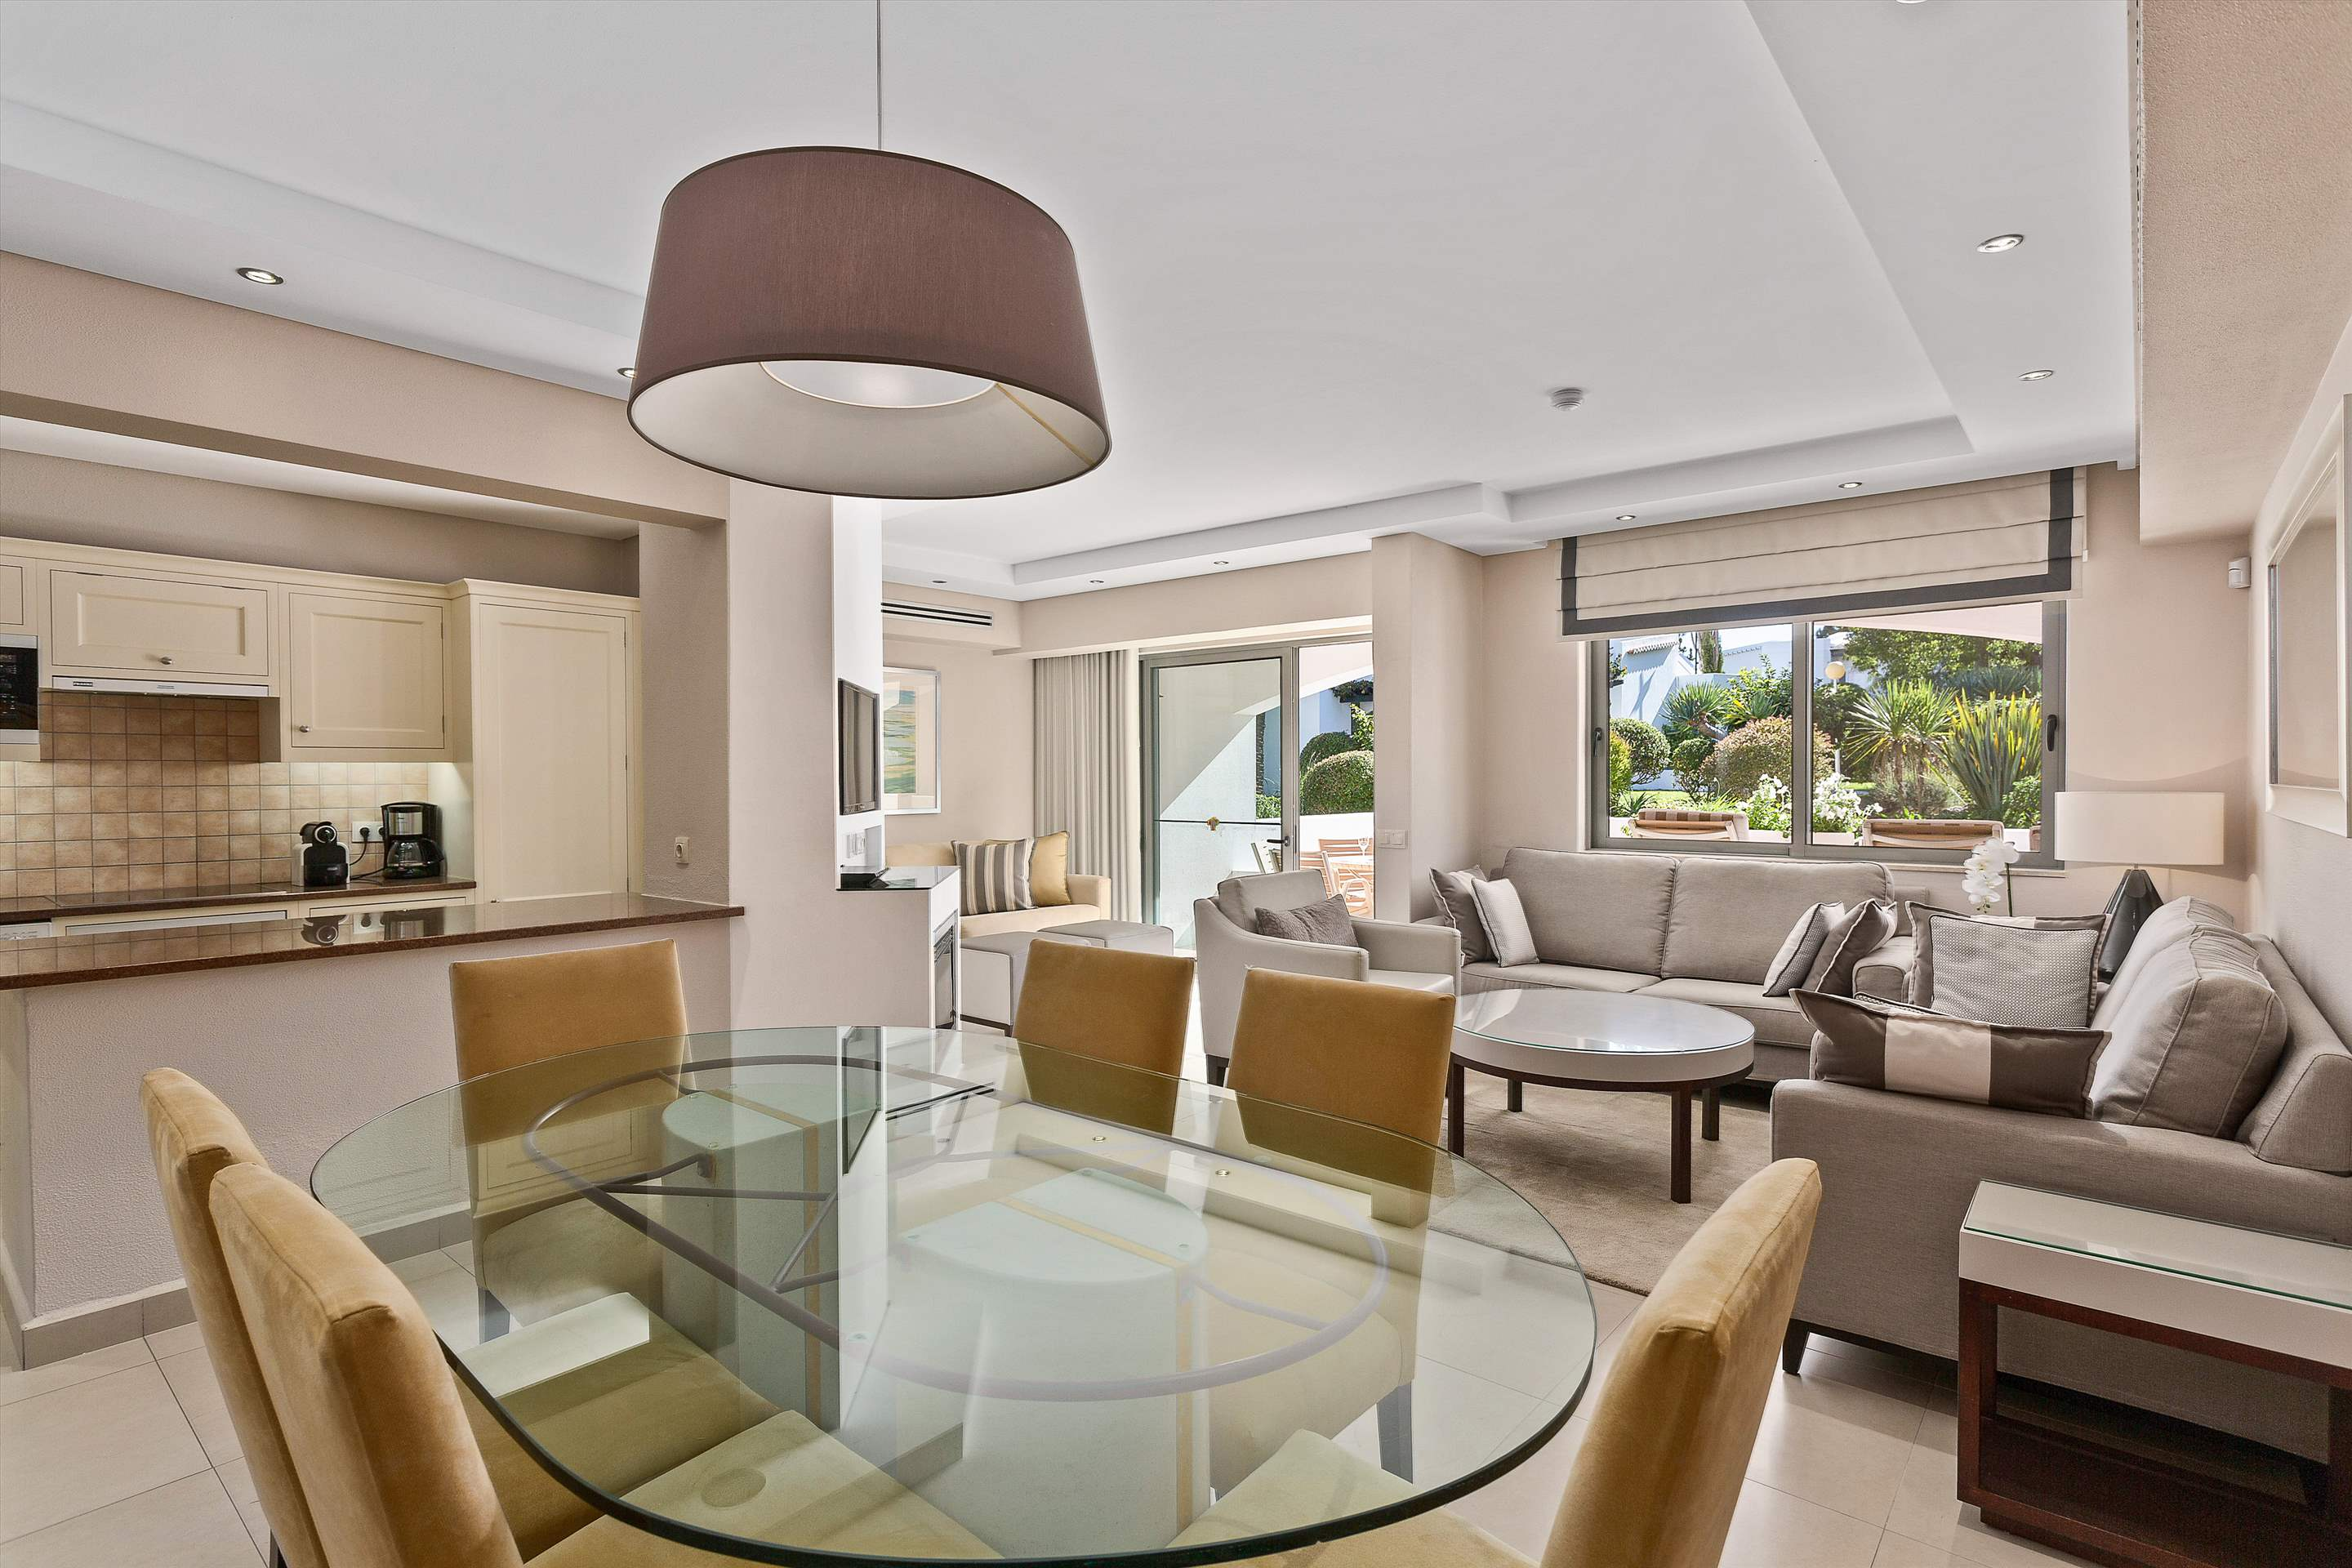 Four Seasons Country Club 2 bed, Superior - Sunday Arrival, 2 bedroom apartment in Four Seasons Country Club, Algarve Photo #5